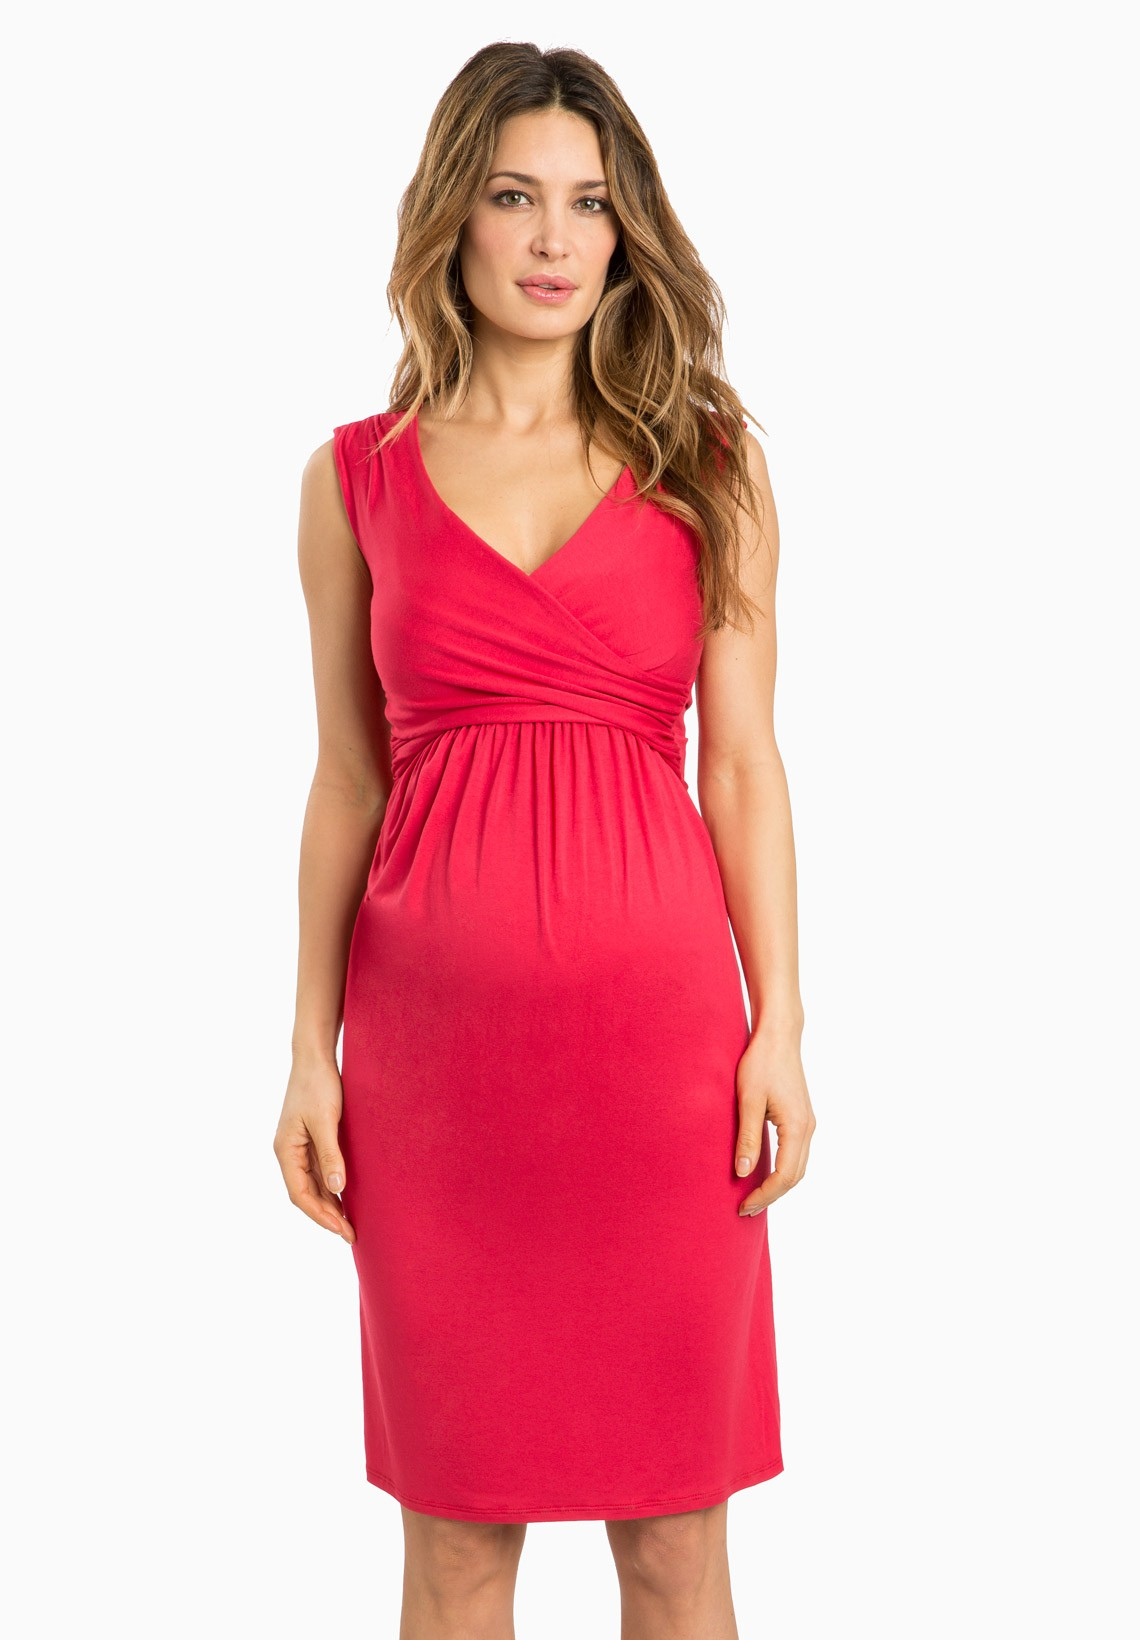 Nursing clothes trendy selections at affordable prices envie nursing divine tank maternity dress ombrellifo Images